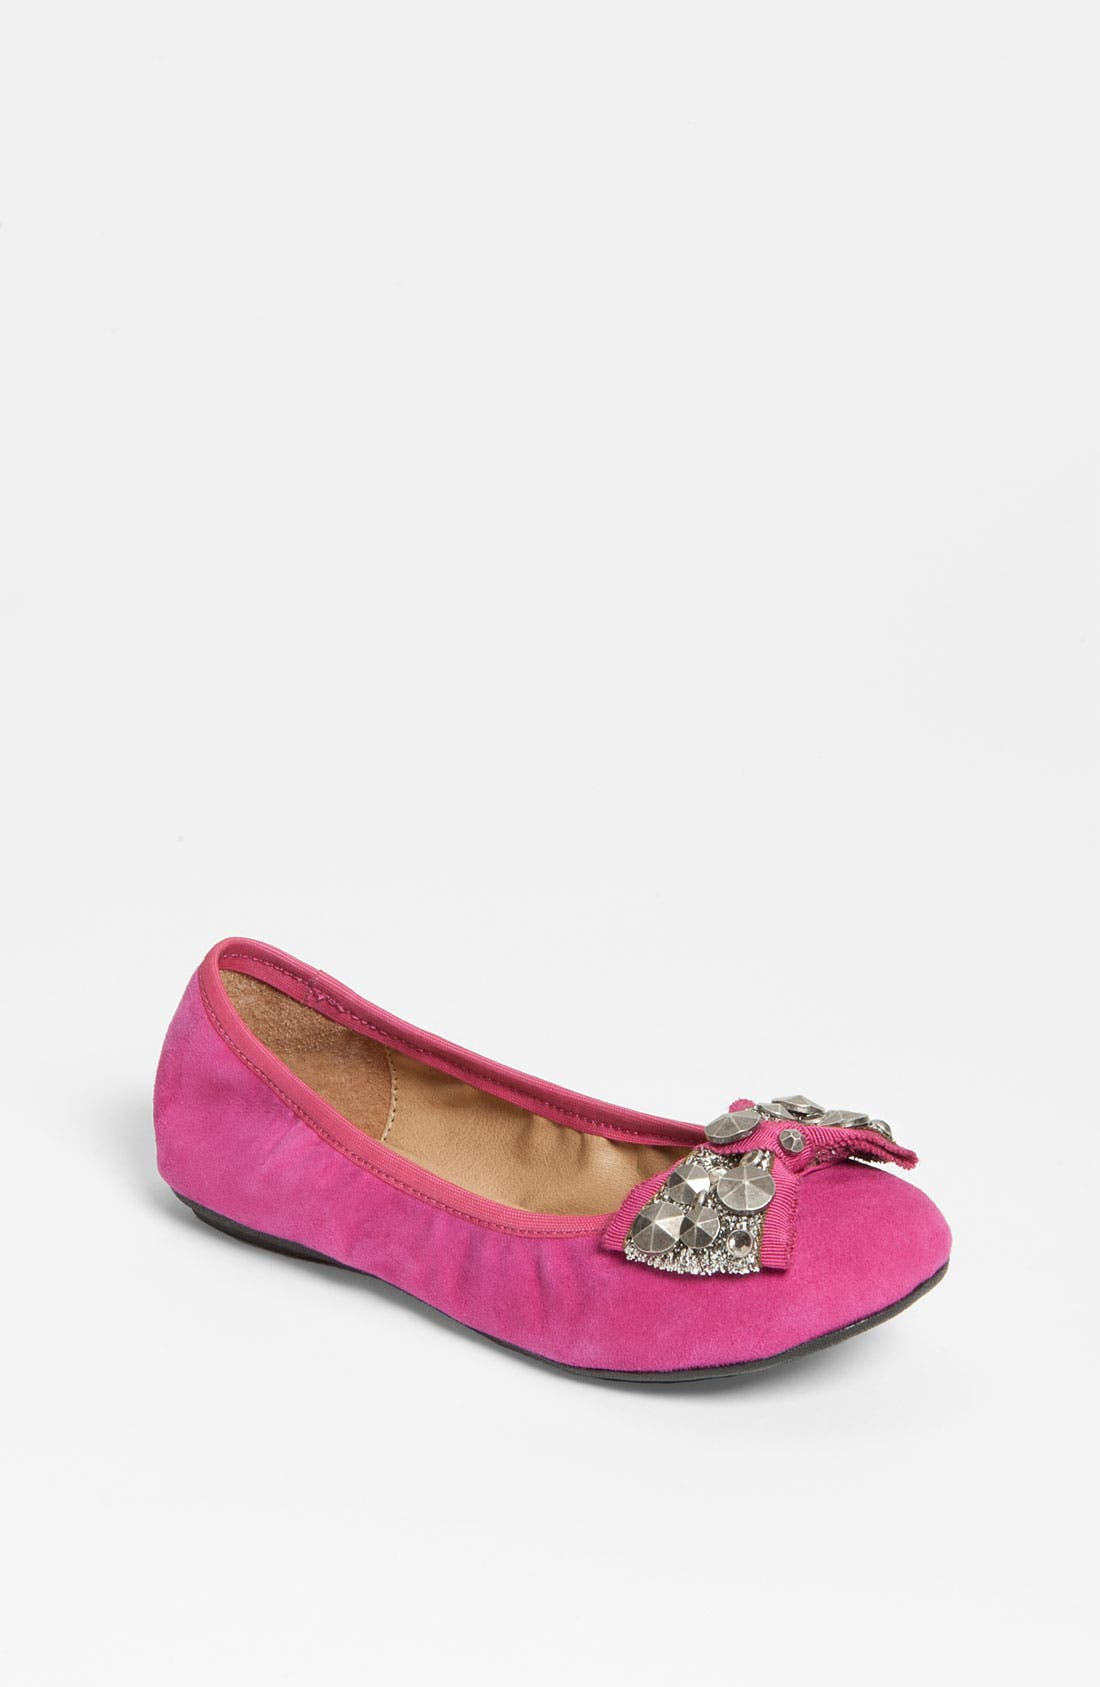 Alternate Image 1 Selected - Nordstrom 'Kelsey' Flat (Toddler, Little Kid & Big Kid)